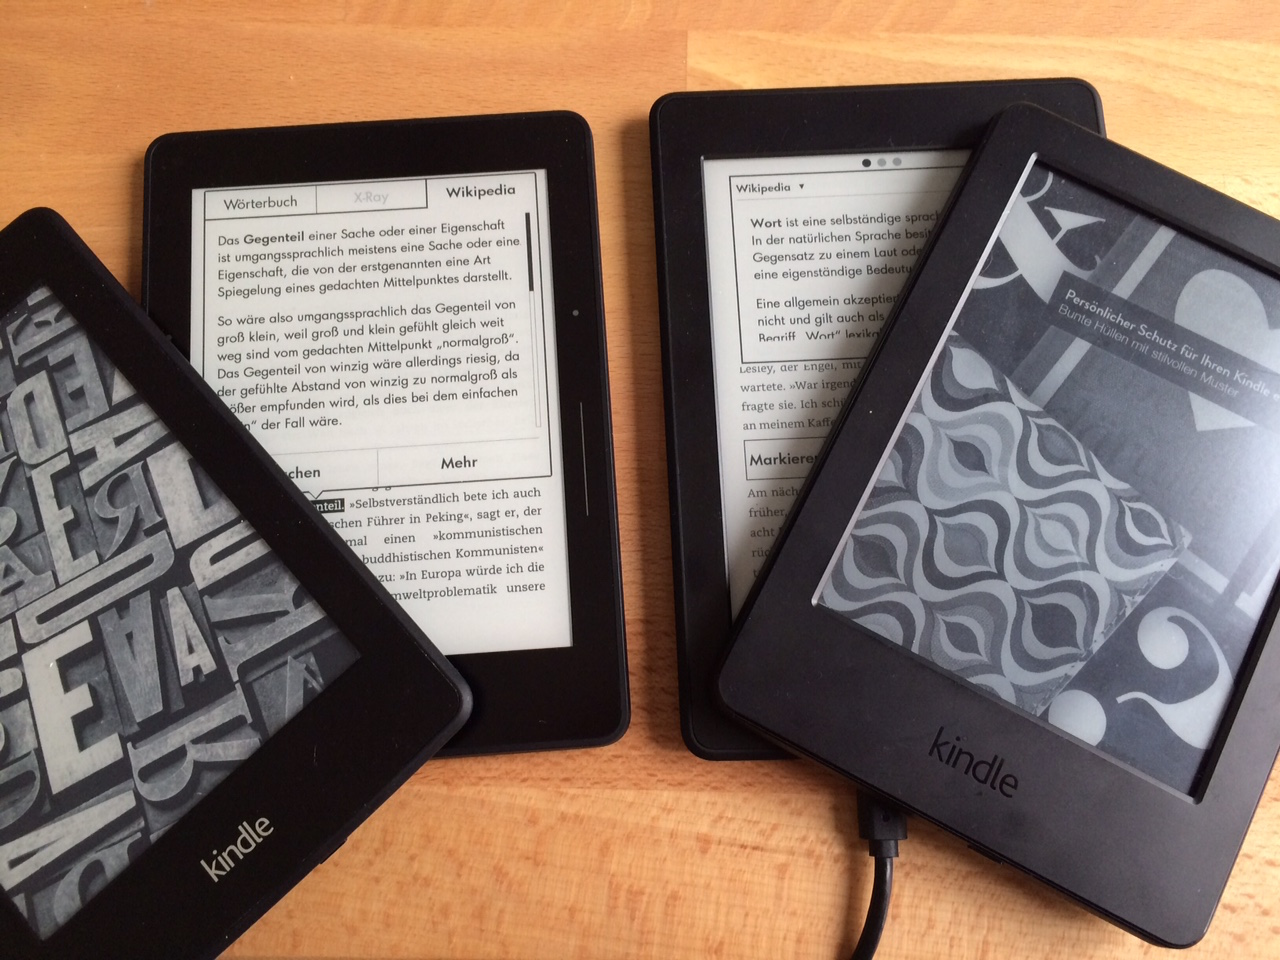 kindle voyage firmware 5.11.1.1